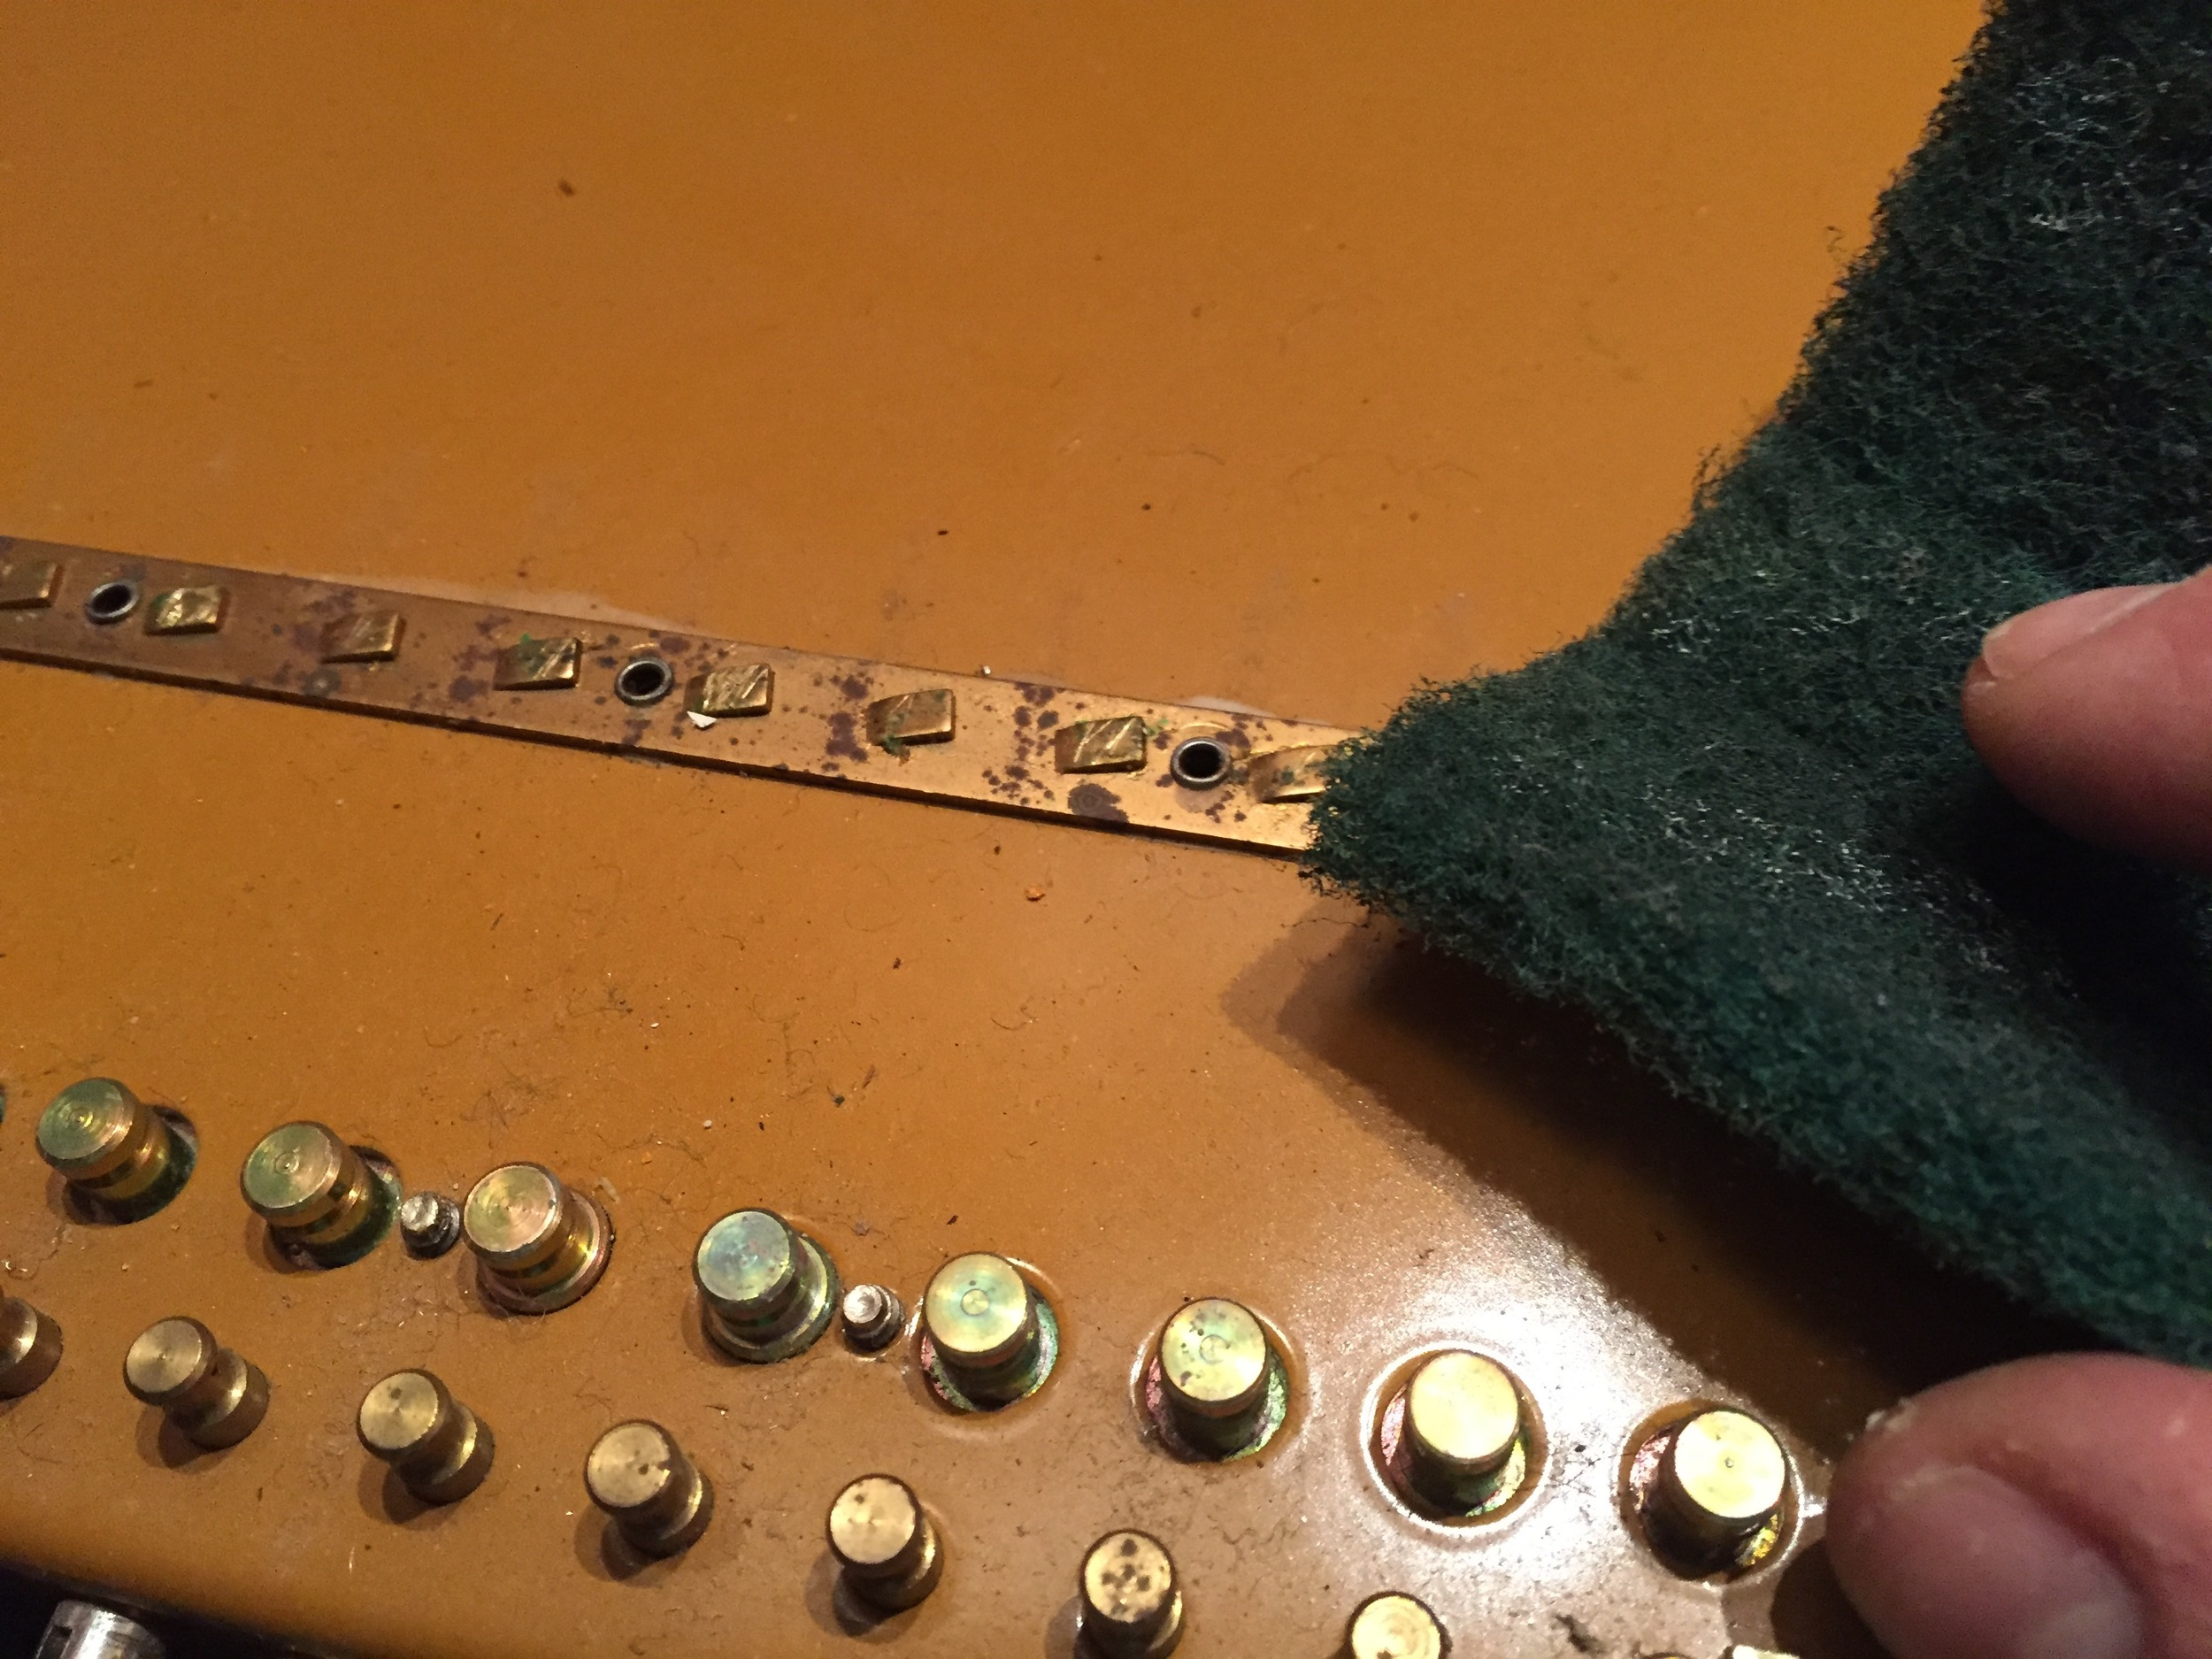 Removing corrosion with a Scotch-brite pad.